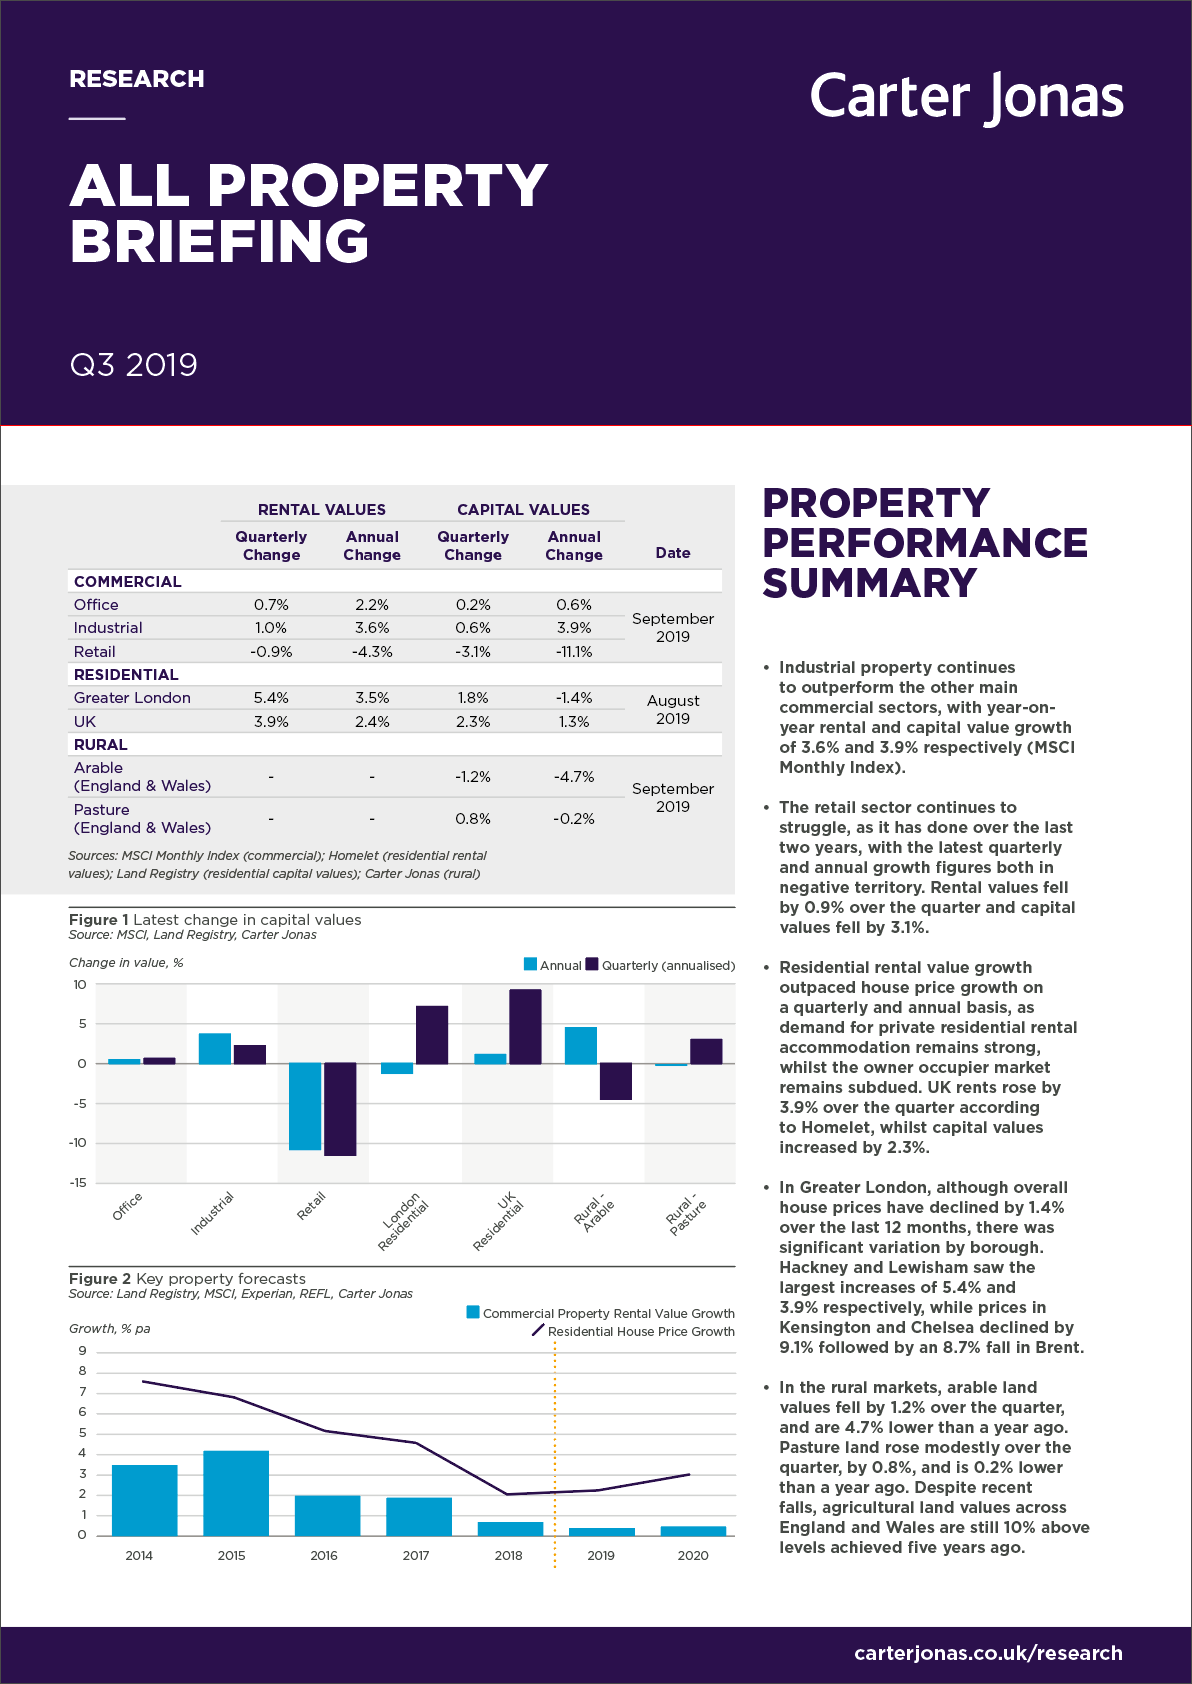 Screen shot of page one of All Property Briefing document from Carter Jonas